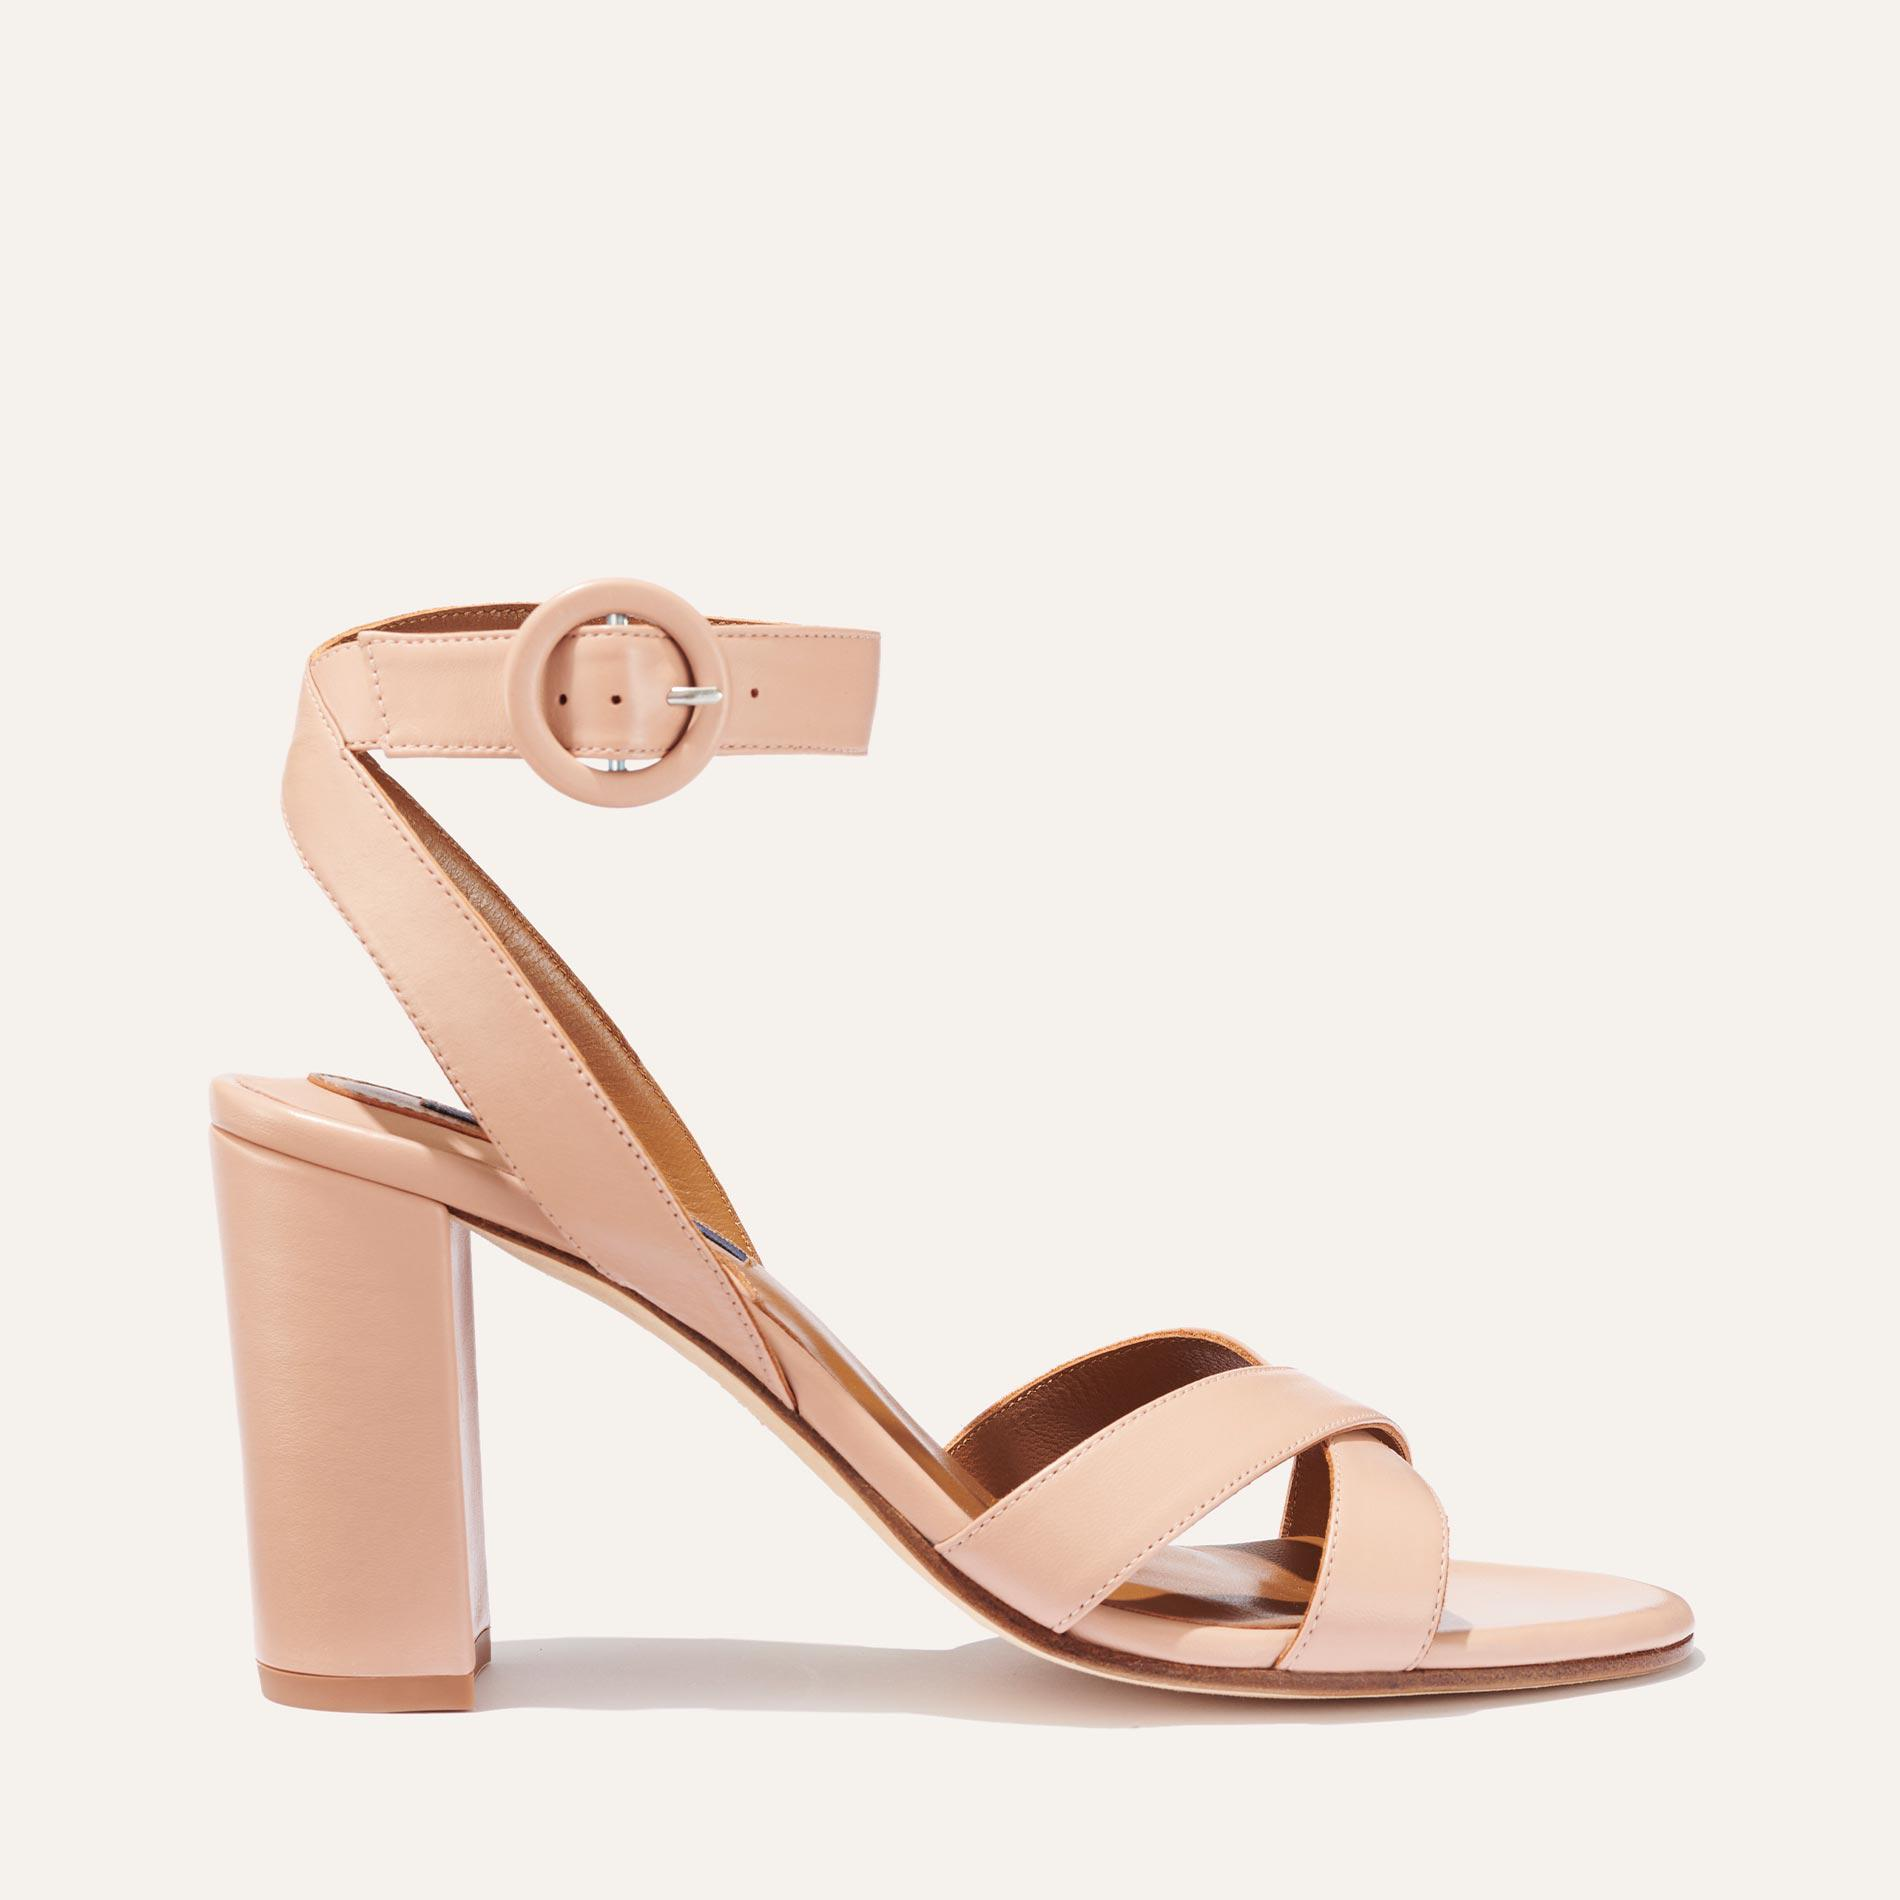 The Uptown Sandal - Rose Nappa